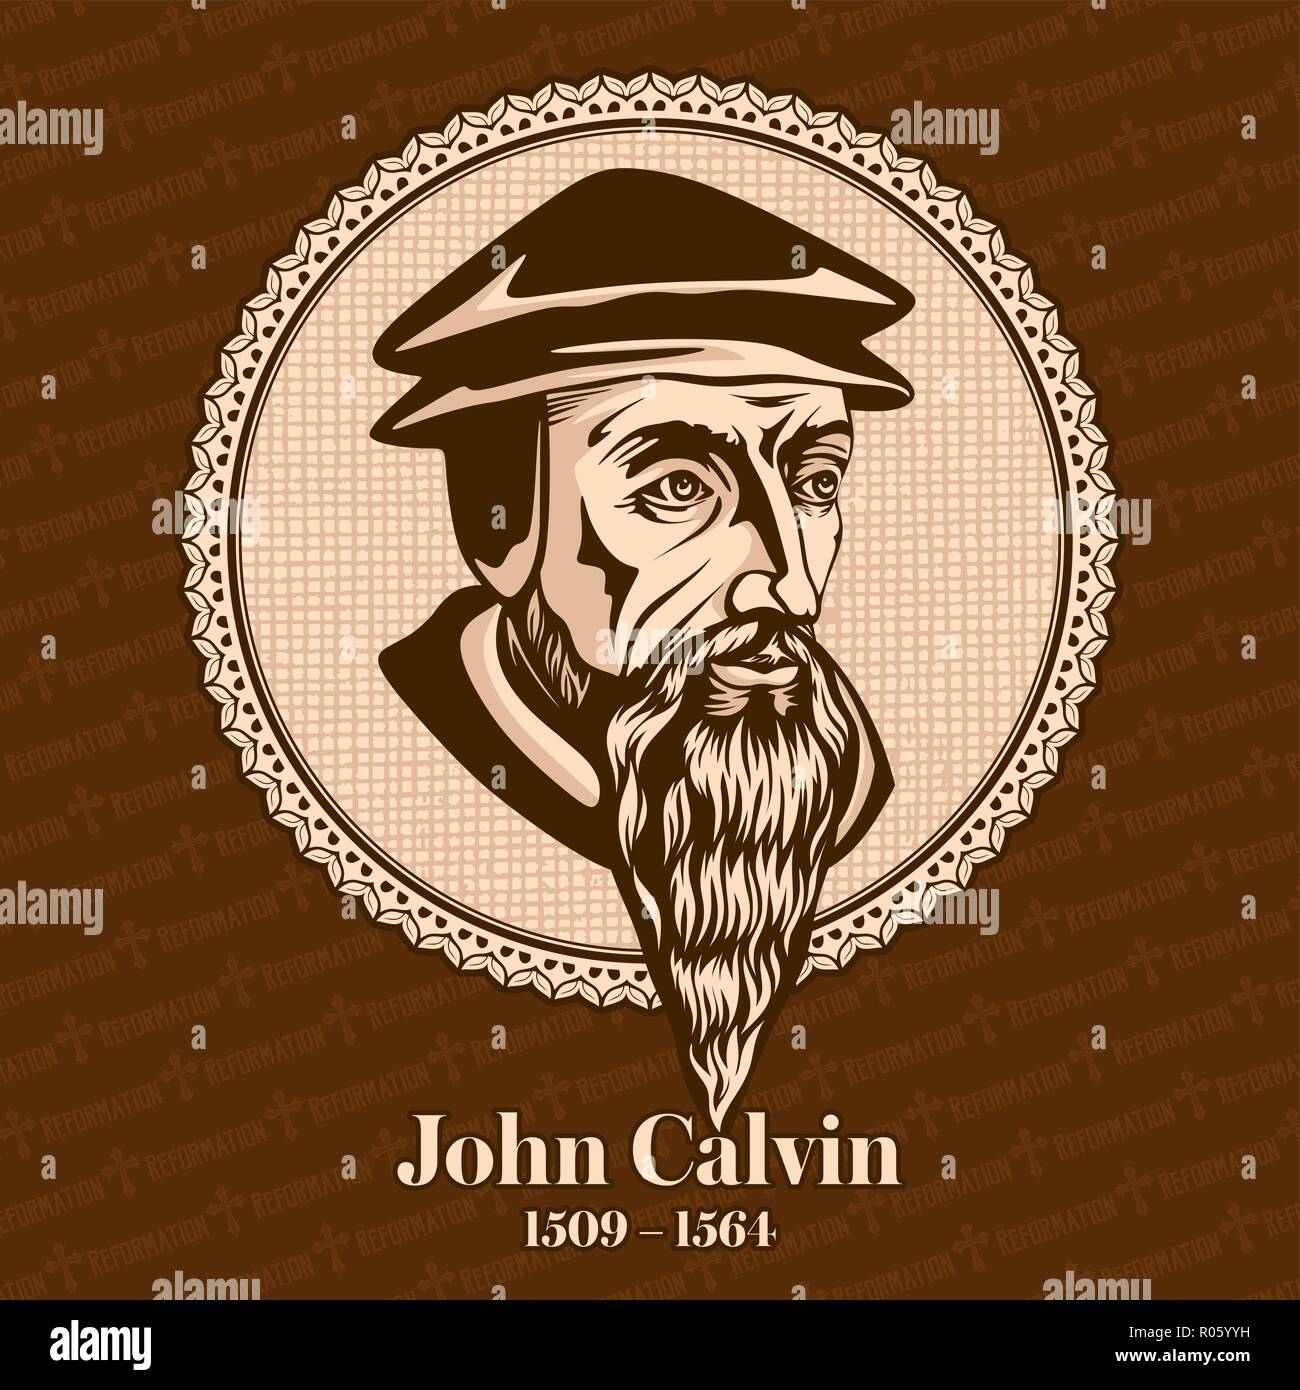 John Calvin (1509 – 1564) was a French theologian, pastor and reformer in Geneva during the Protestant Reformation. Christian figure. - Stock Image